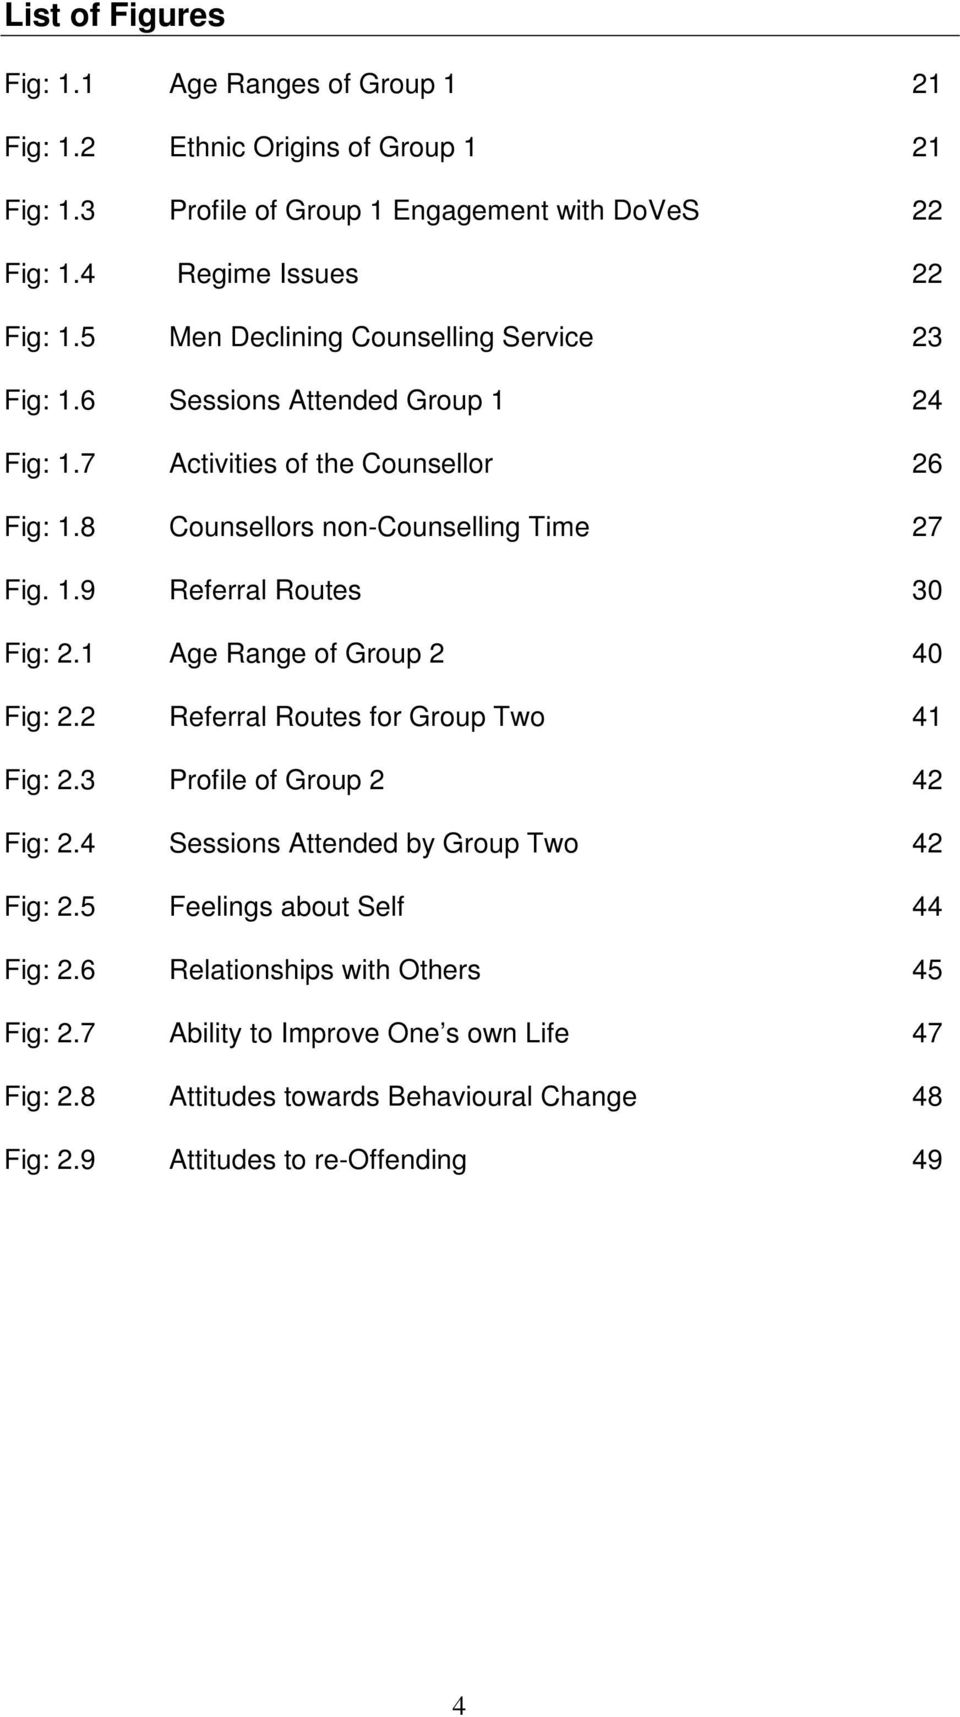 1 Age Range of Group 2 40 Fig: 2.2 Referral Routes for Group Two 41 Fig: 2.3 Profile of Group 2 42 Fig: 2.4 Sessions Attended by Group Two 42 Fig: 2.